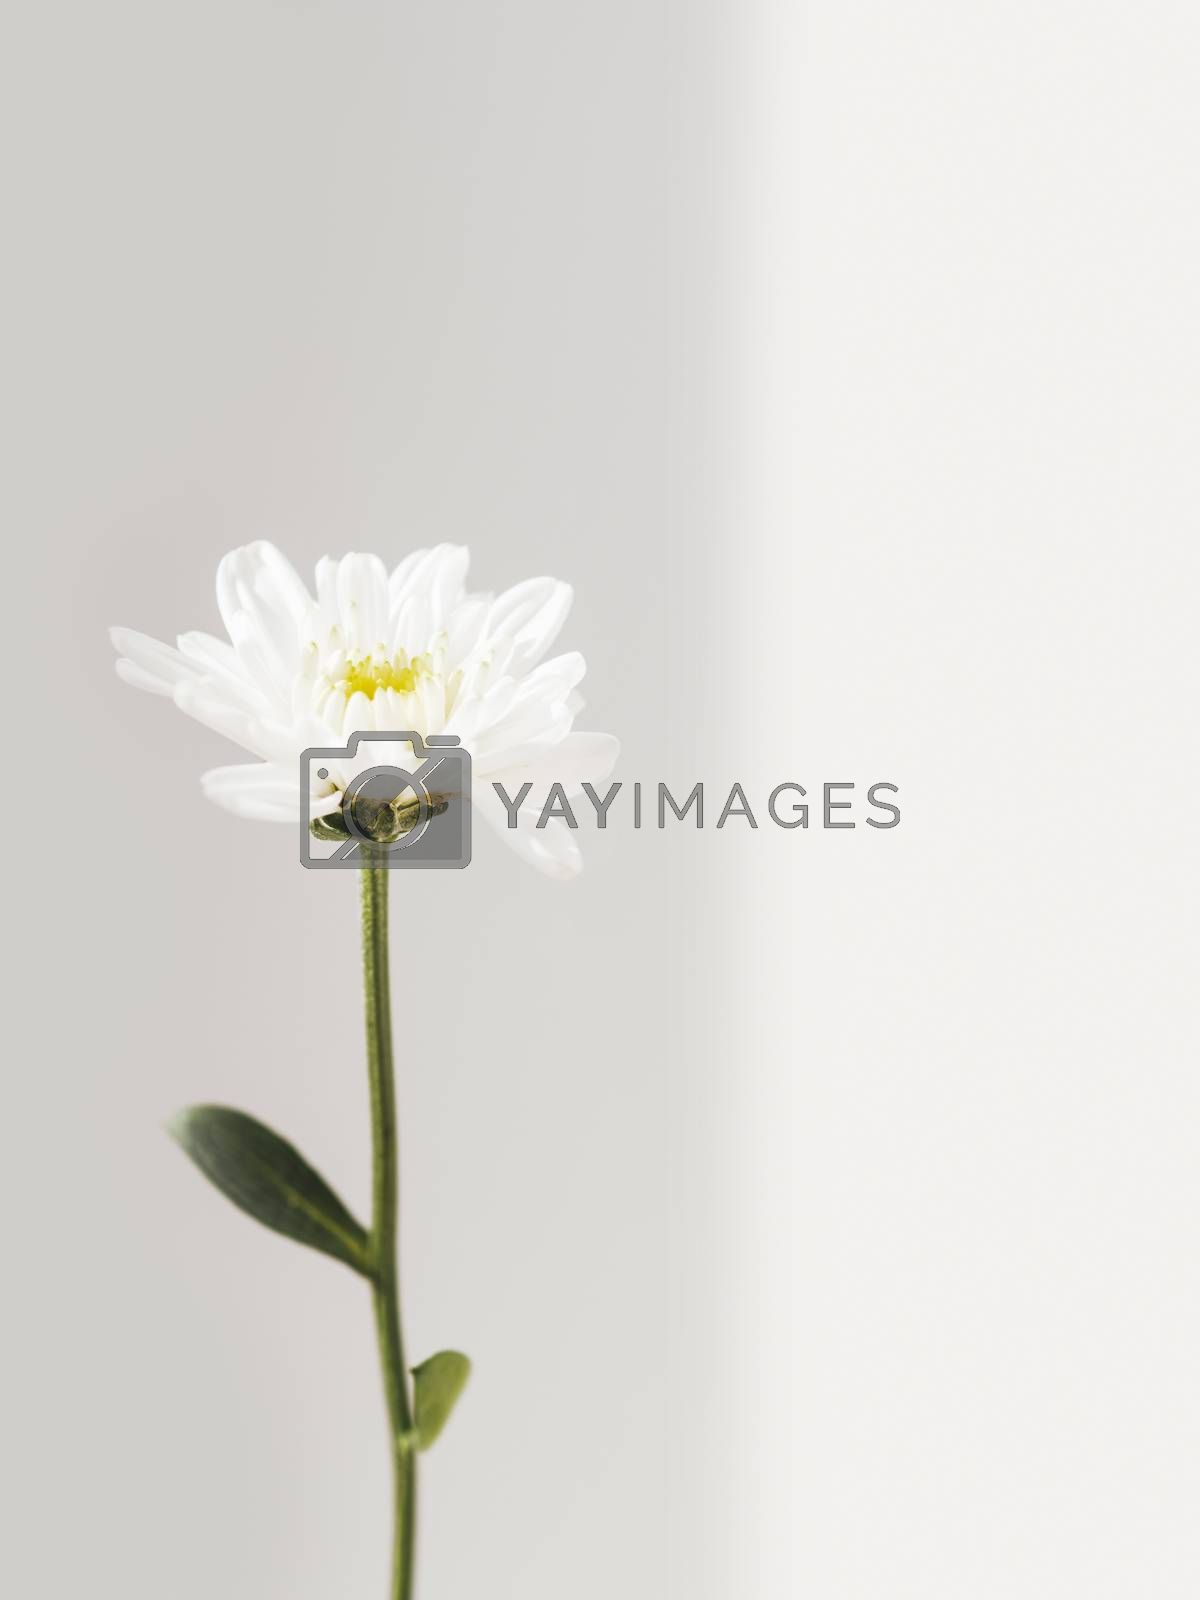 Fragile chrysanthemum flower.  Blooming flower on grey background with copy space. Light and shadow.